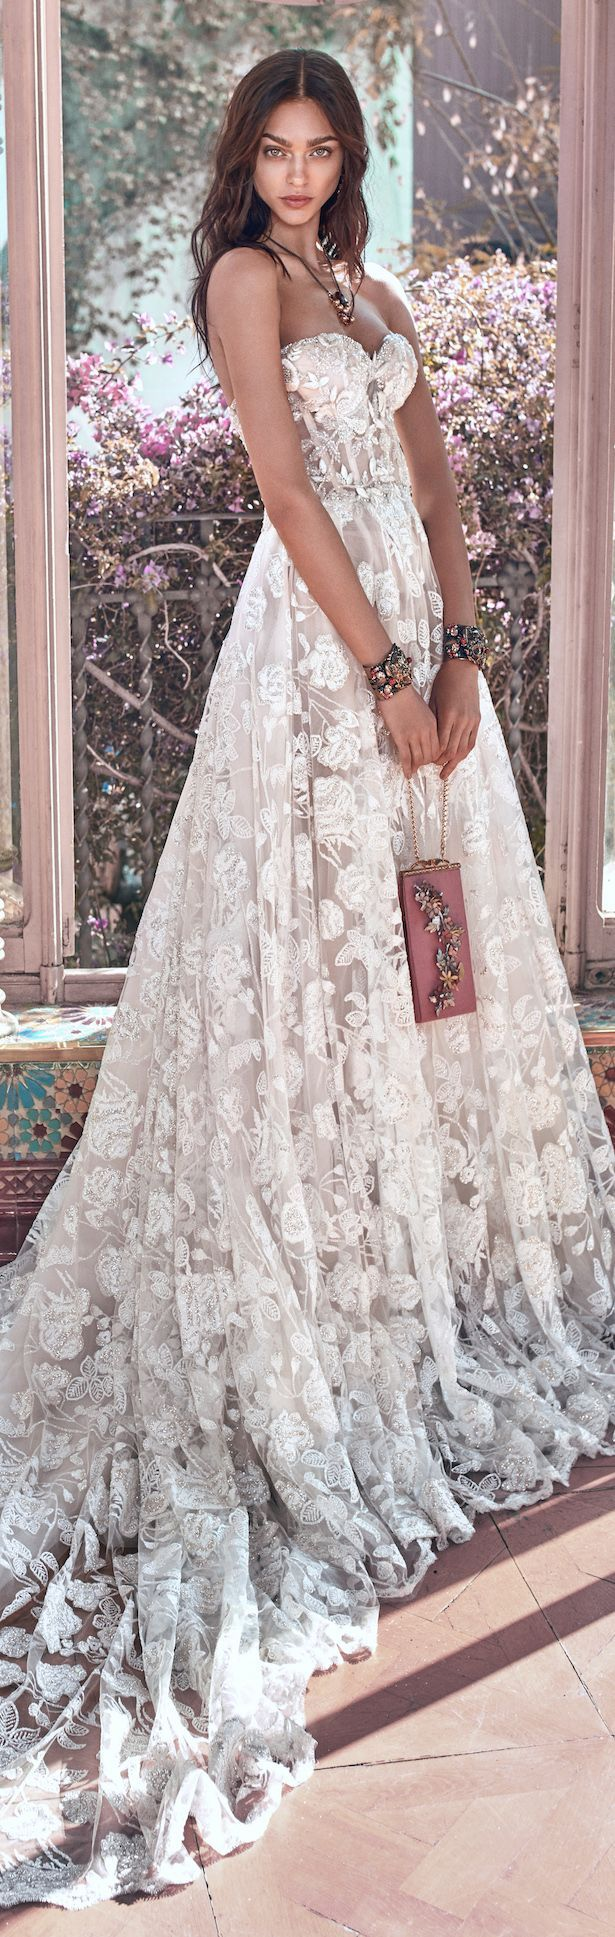 Galia Lahav Wedding Dress Collection 2018 Victorian Affinity